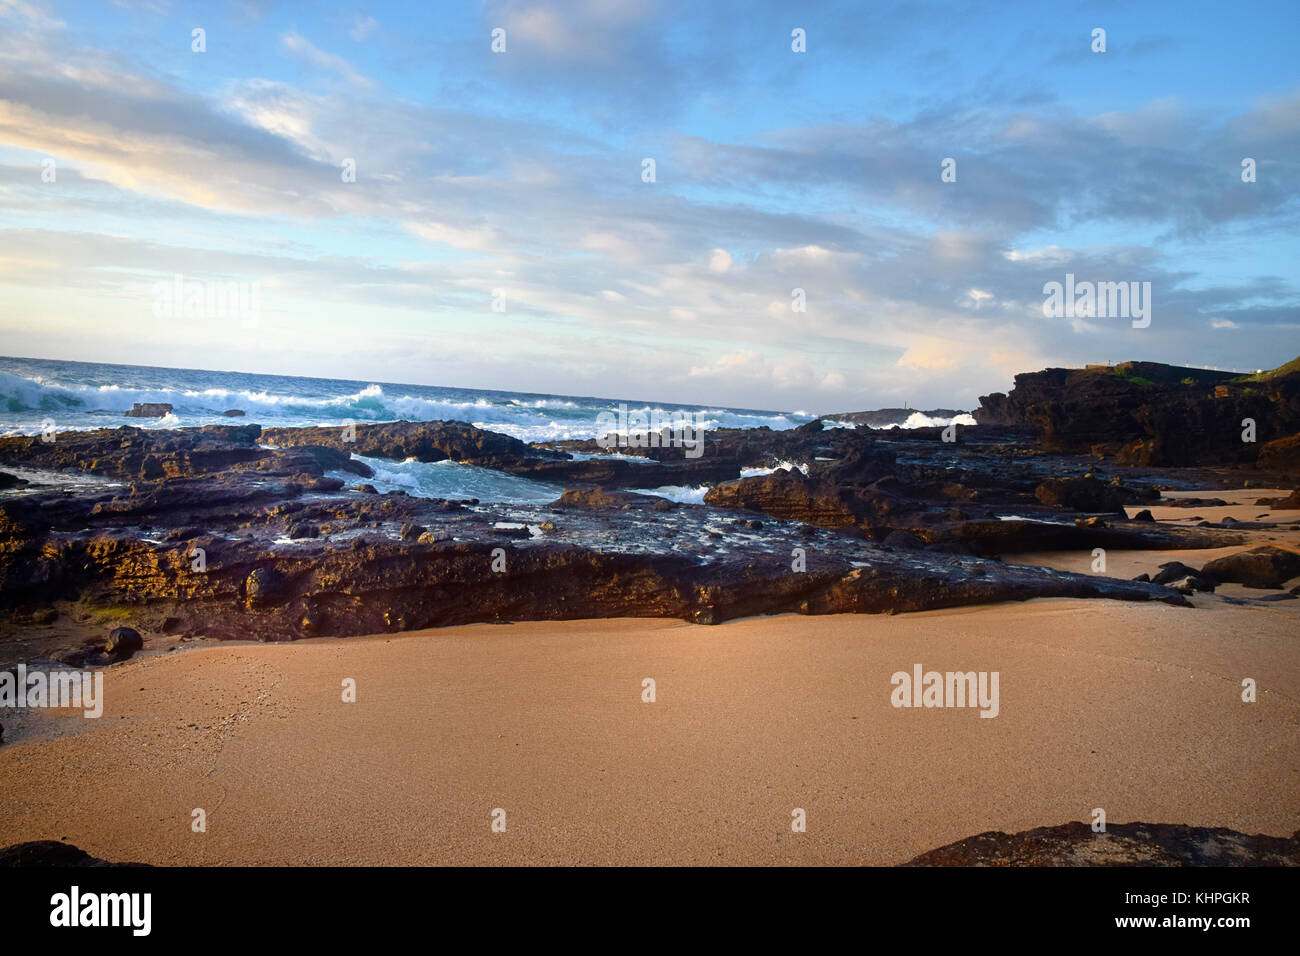 Sunrise over Sandy Beach - Oahu, HawaiiStock Photo